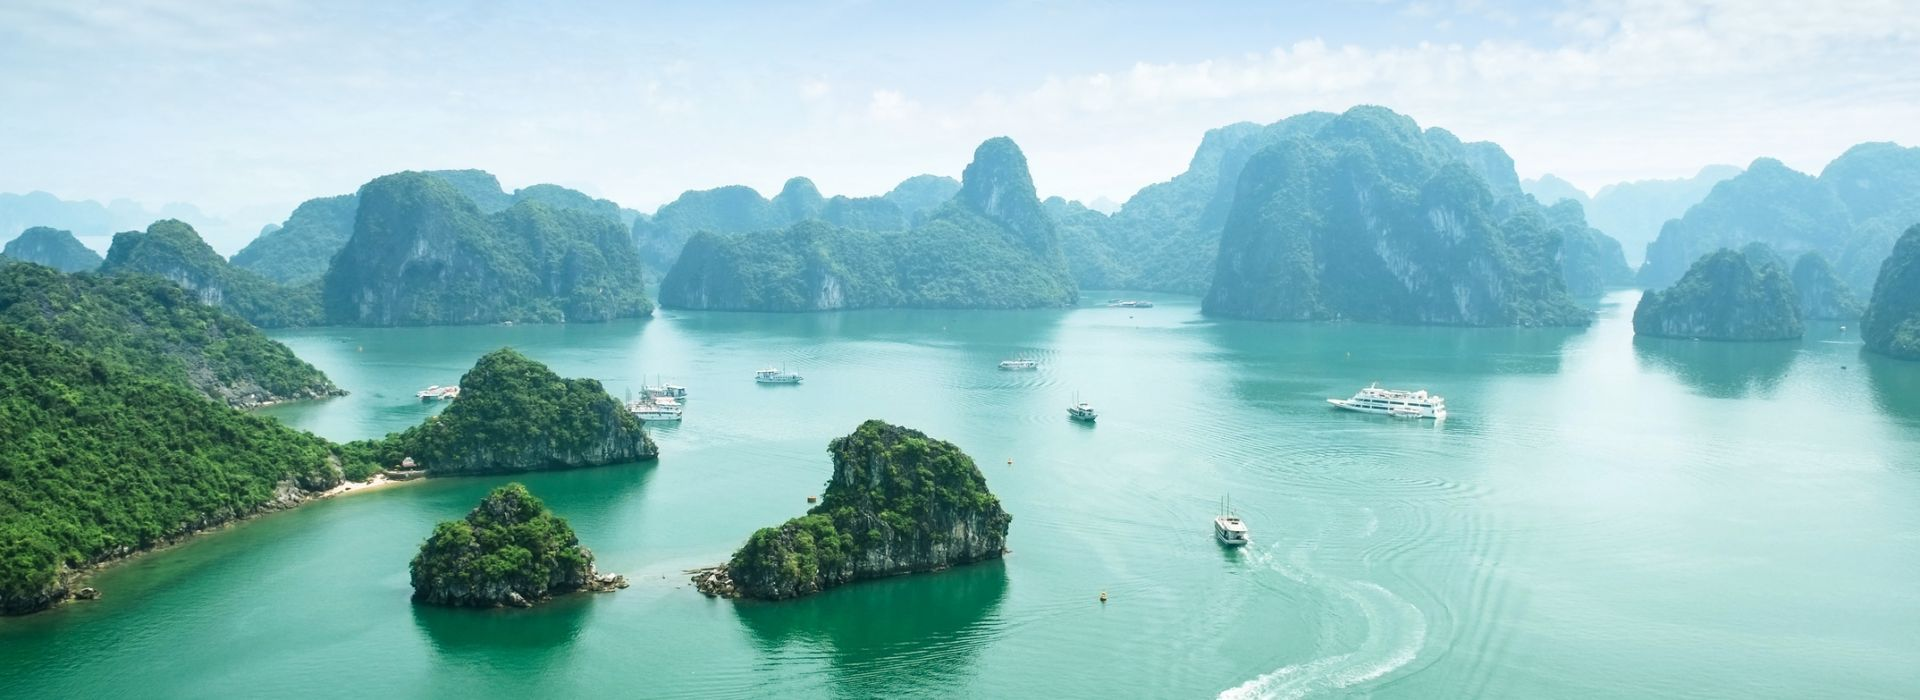 City sightseeing Tours in Ha Long Bay